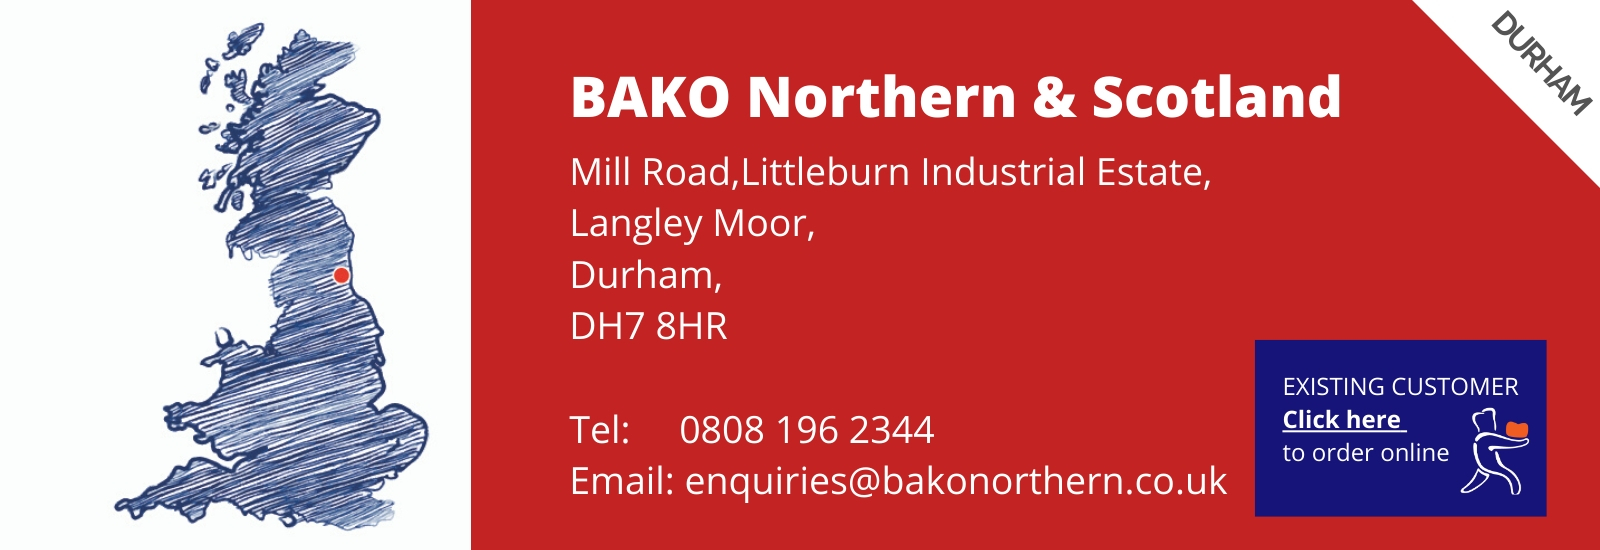 How to order BAKO Northern & Scotland